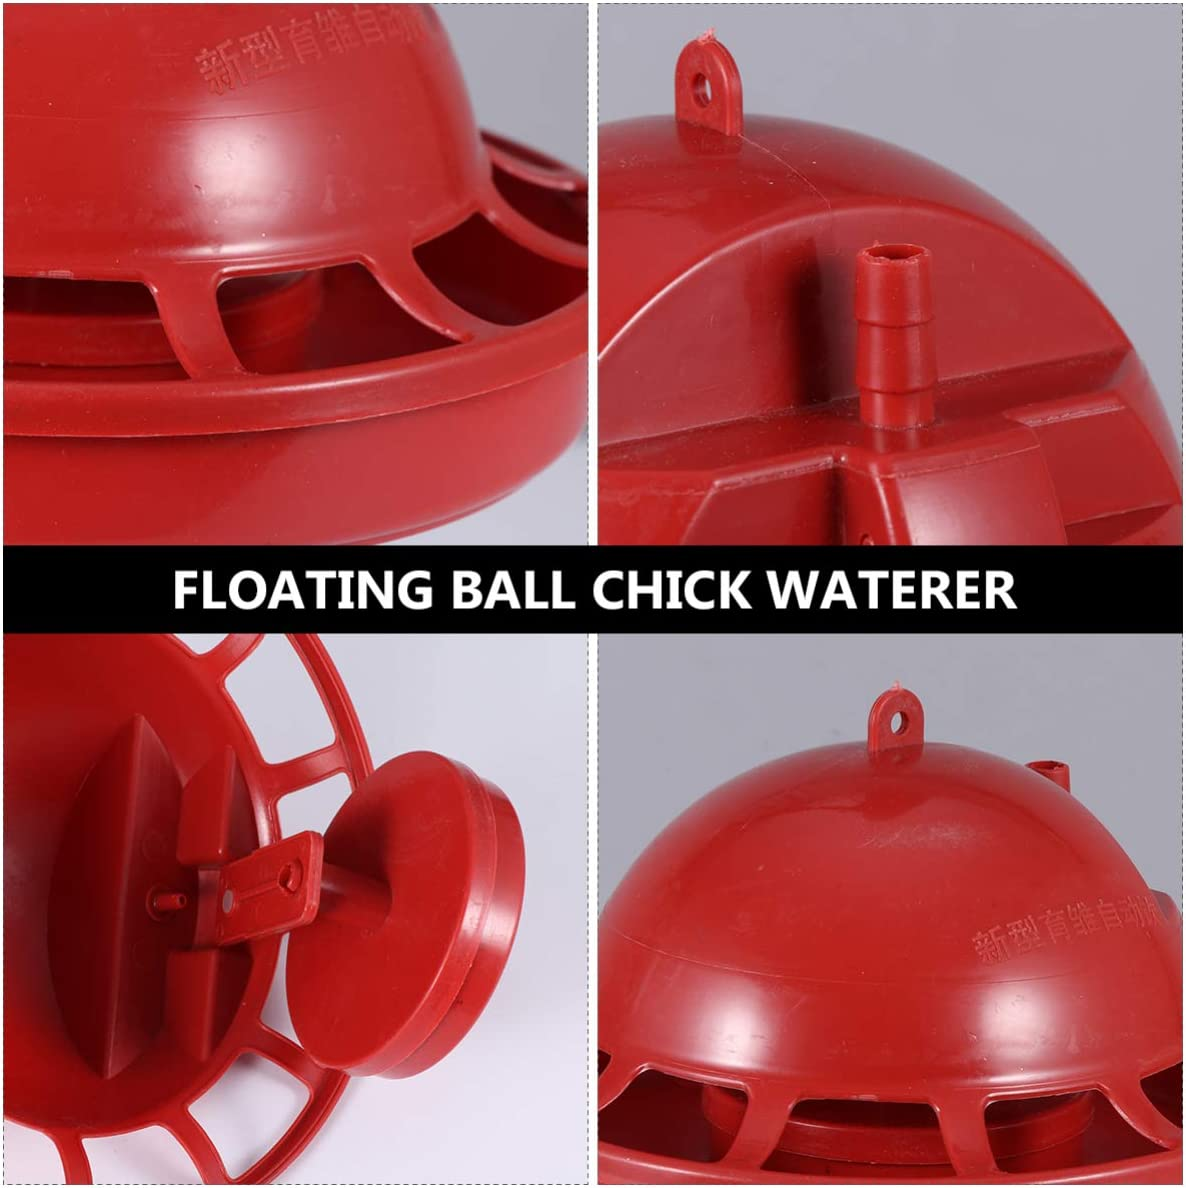 Automatic Feed Dispenser Poultry Feeder for Poultry Chick Farming iplusmile 2PCS Chicken Feeder Plastic Chicken Feed Bucket